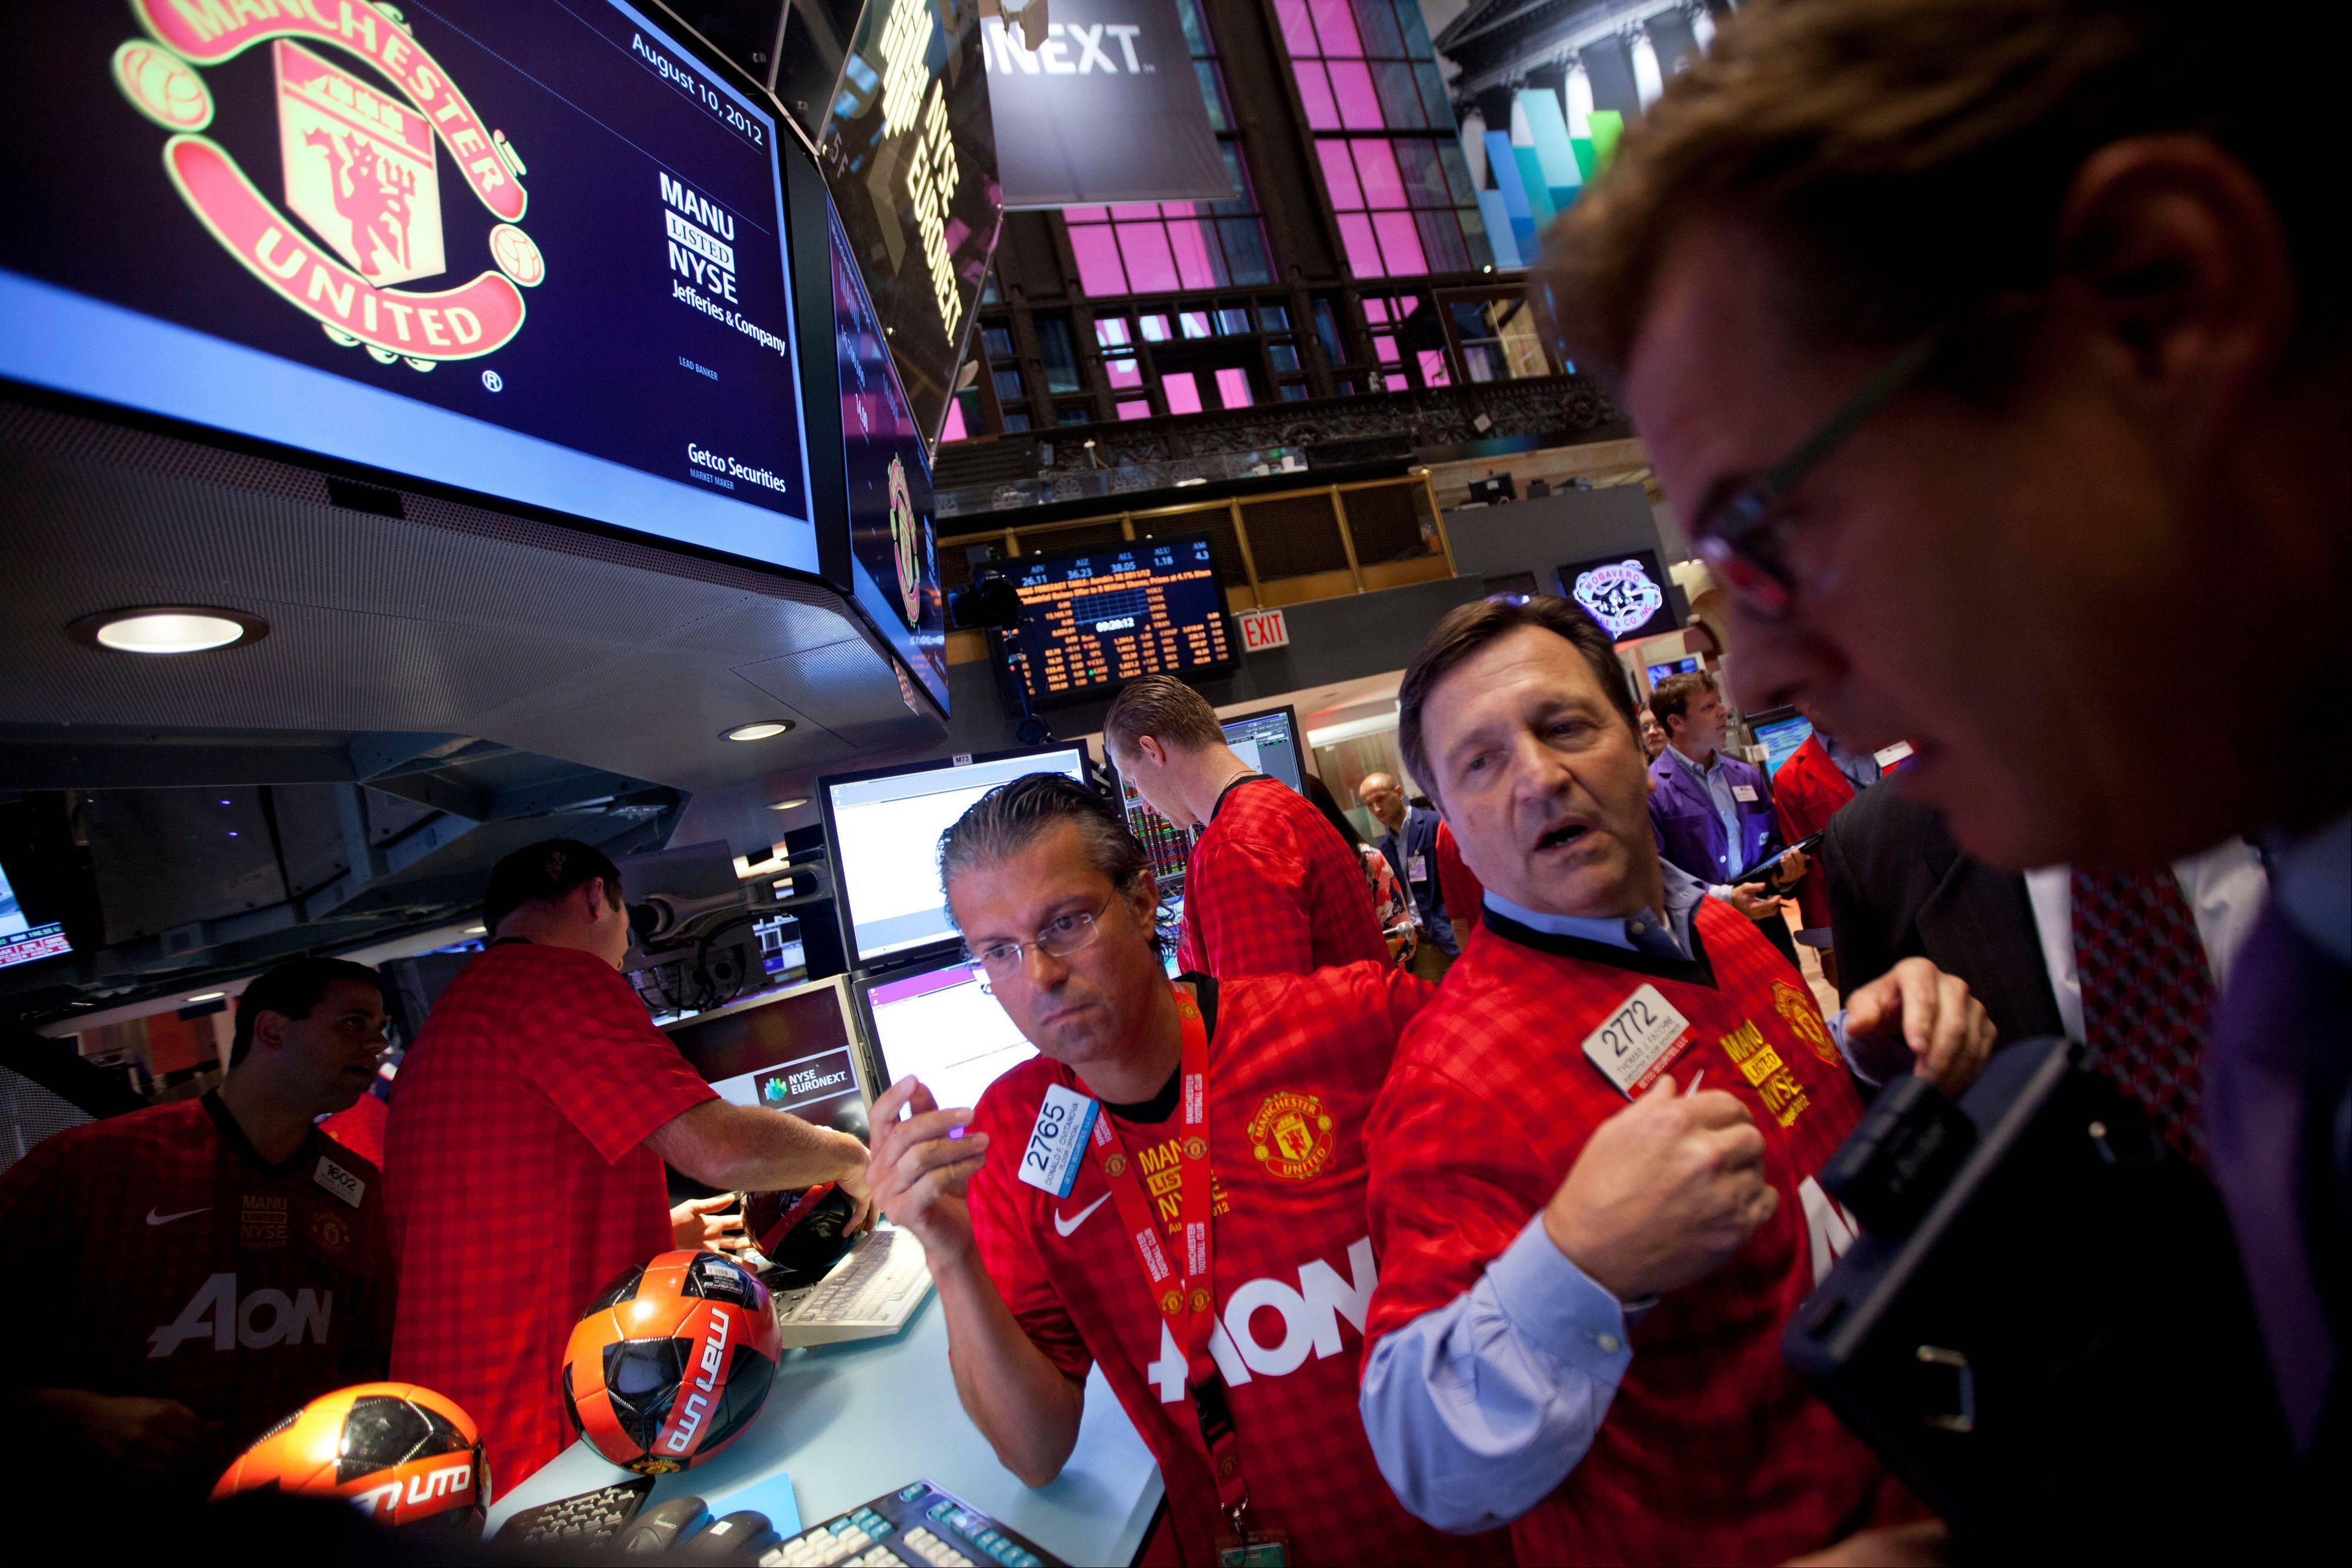 Traders work while wearing Manchester United jerseys on the floor of the New York Stock Exchange on Friday, Aug. 10, 2012 in New York. Shares of soccer club Manchester United made their public debut Friday, edging up slightly as shareholders' enthusiasm for the celebrated team was offset by worry about its debt load and financial performance.